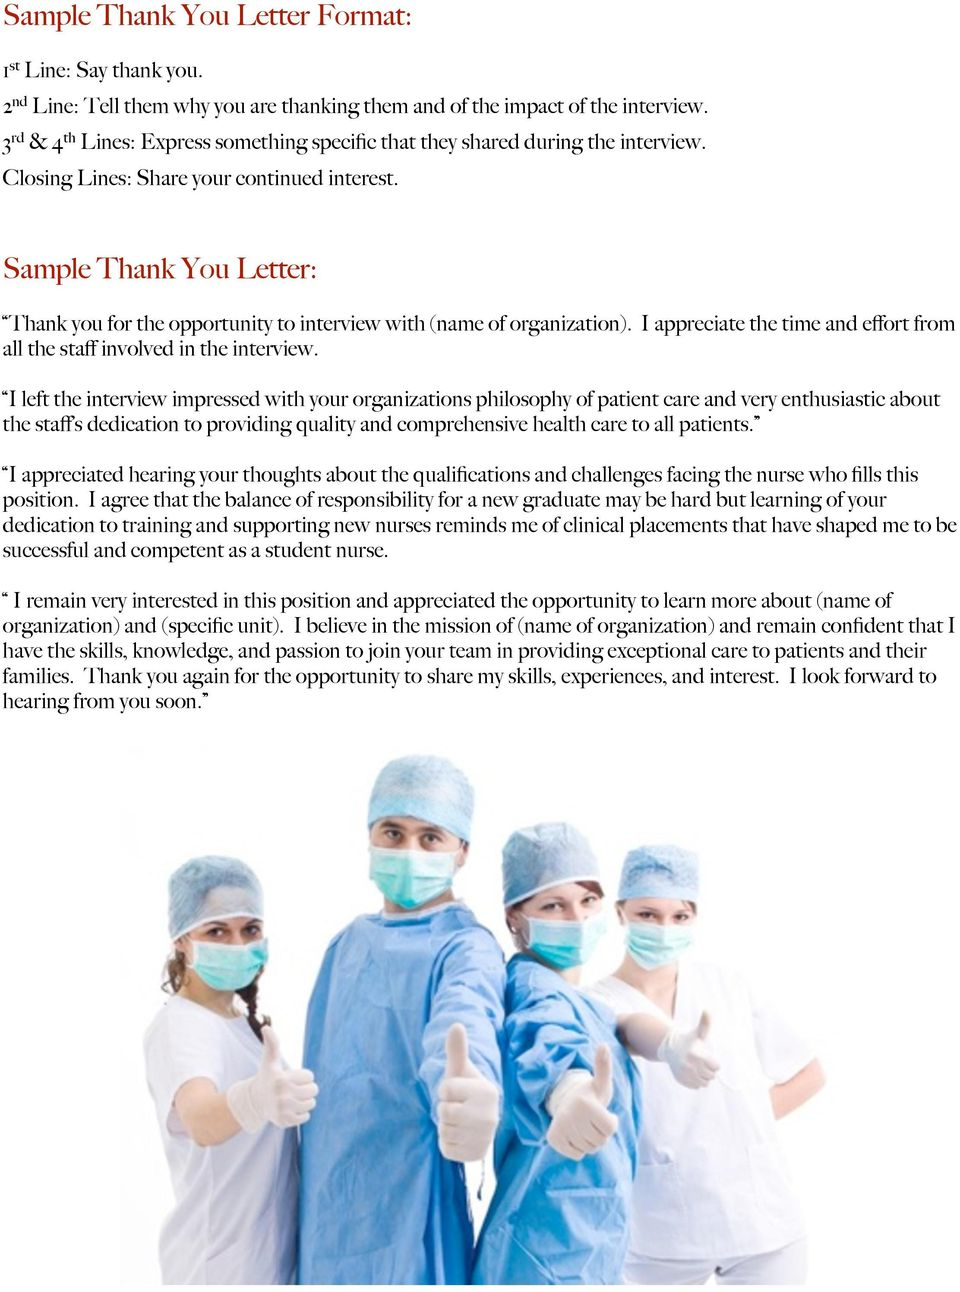 nursing interview success packet pdf sample thank you letter thank you for the opportunity to interview of